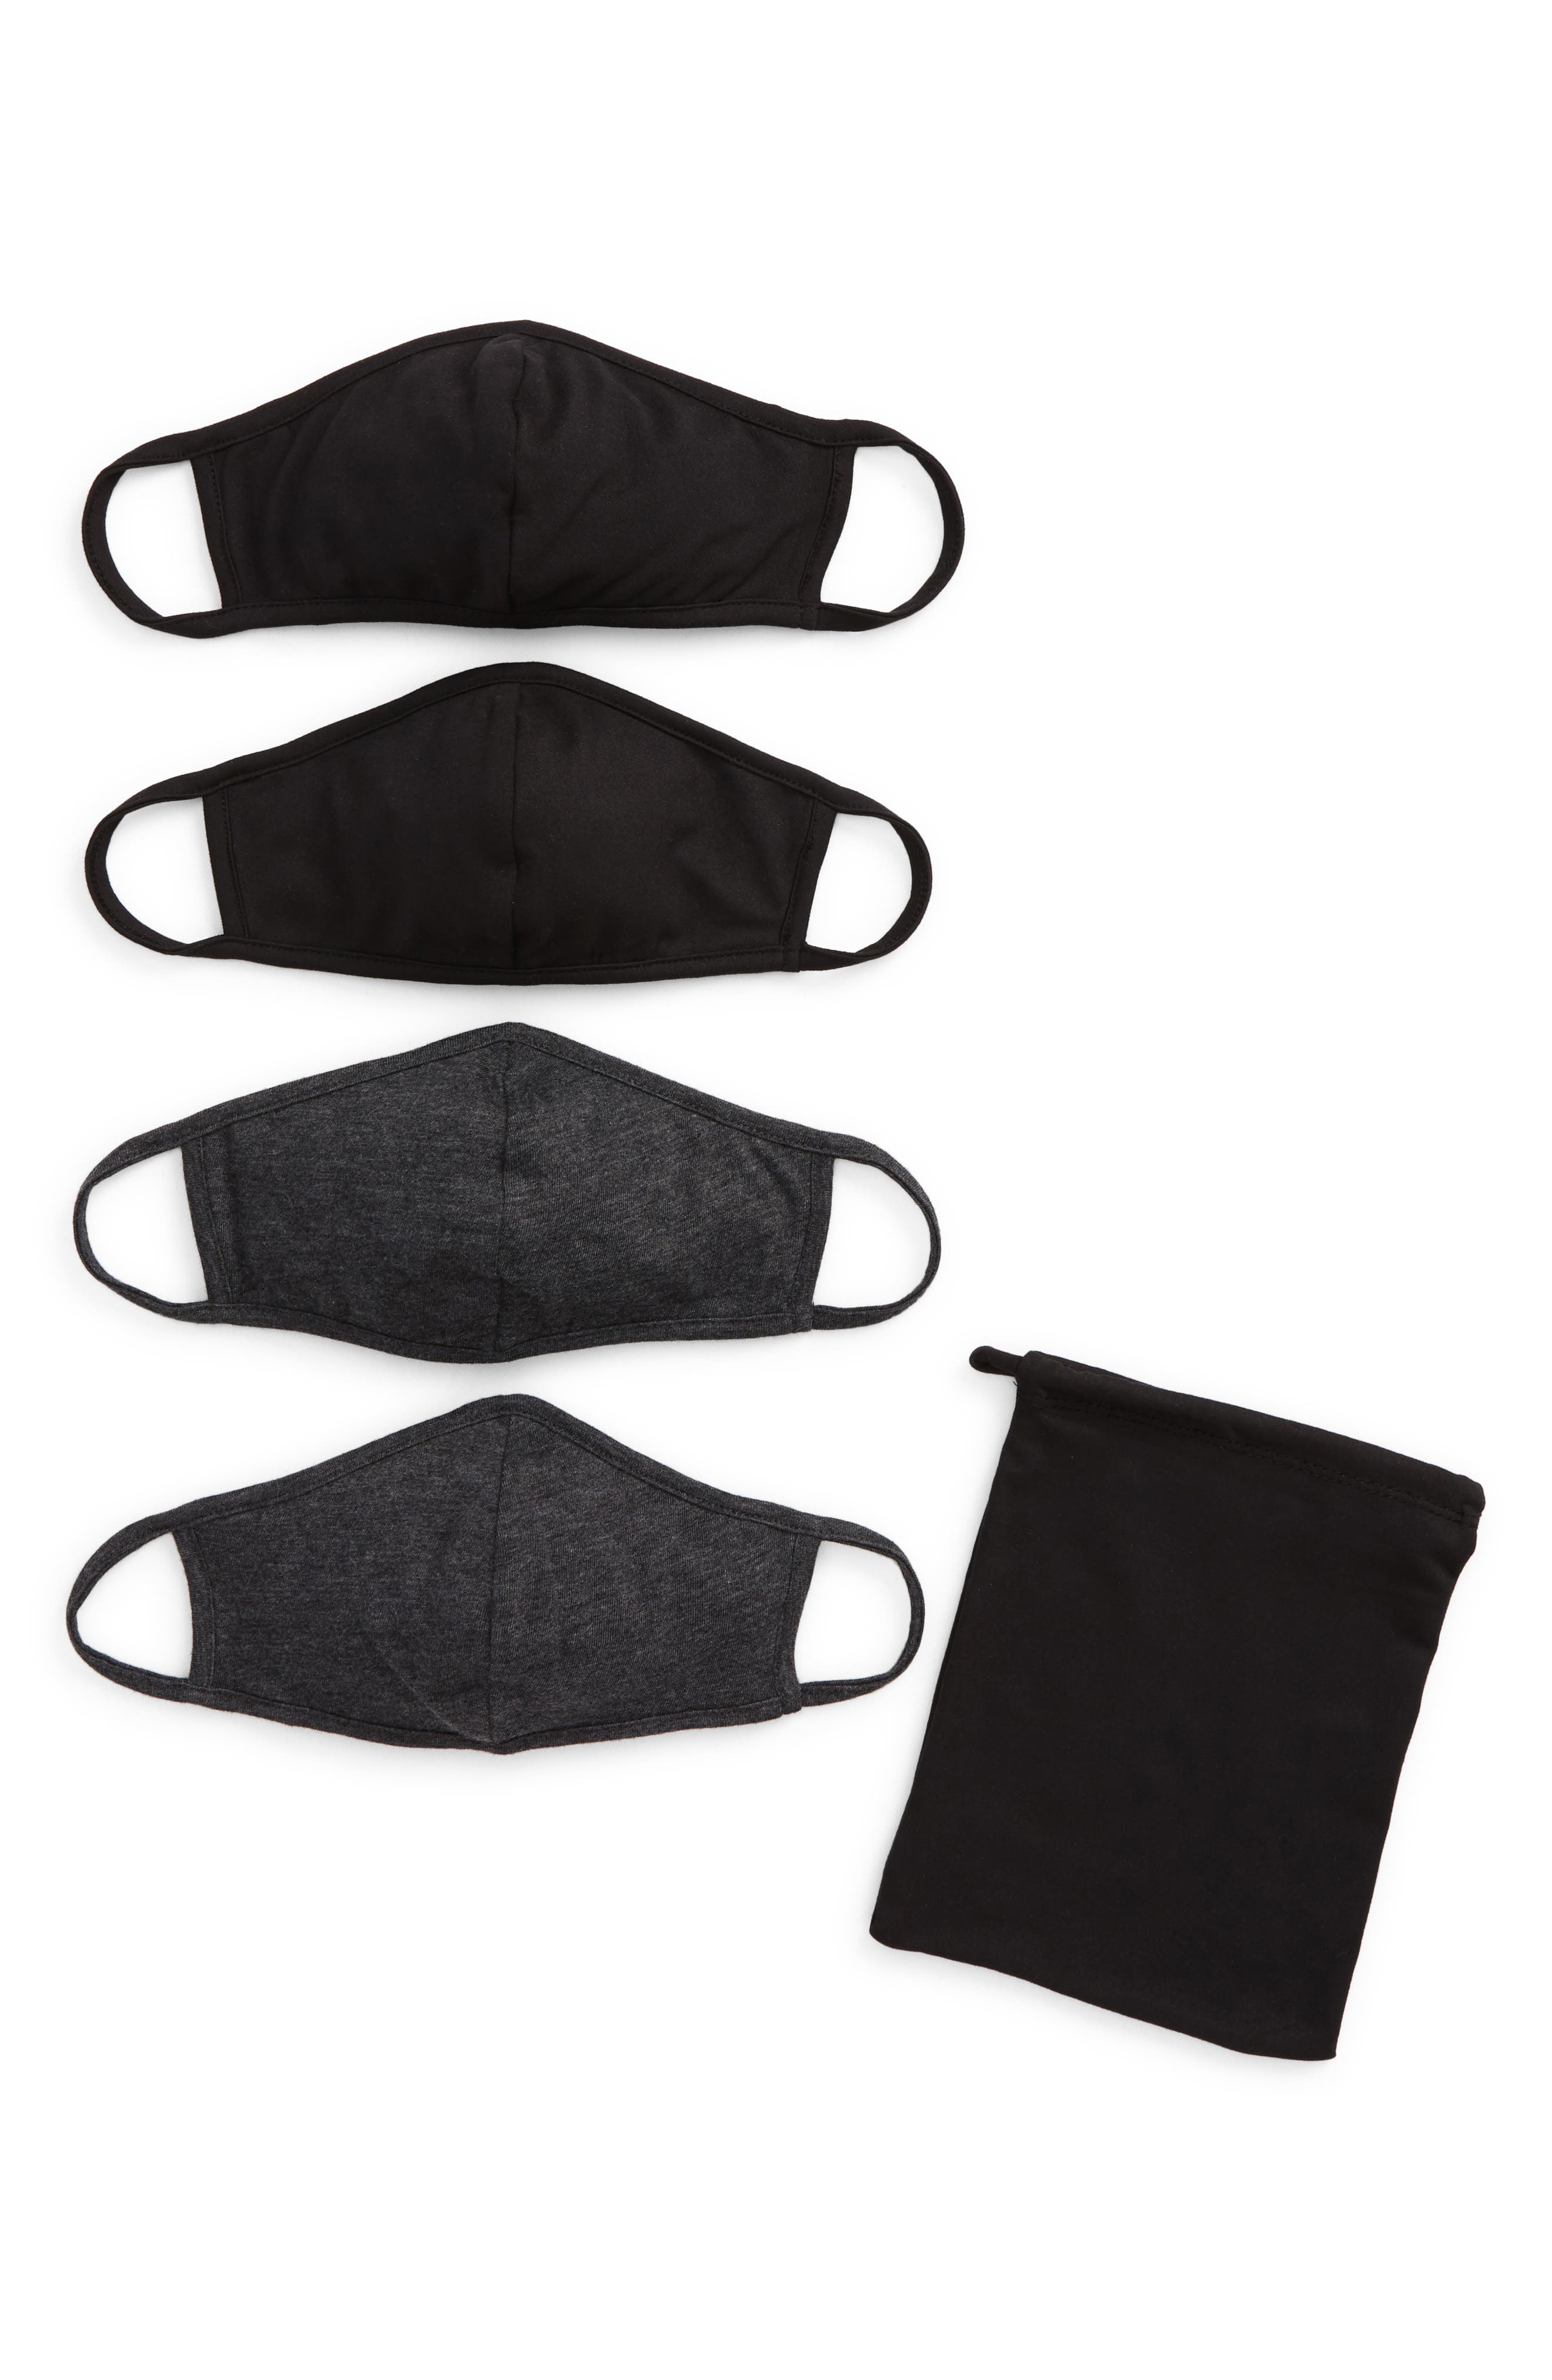 Image of Nordstrom Solid Knit Mask - Pack of 4